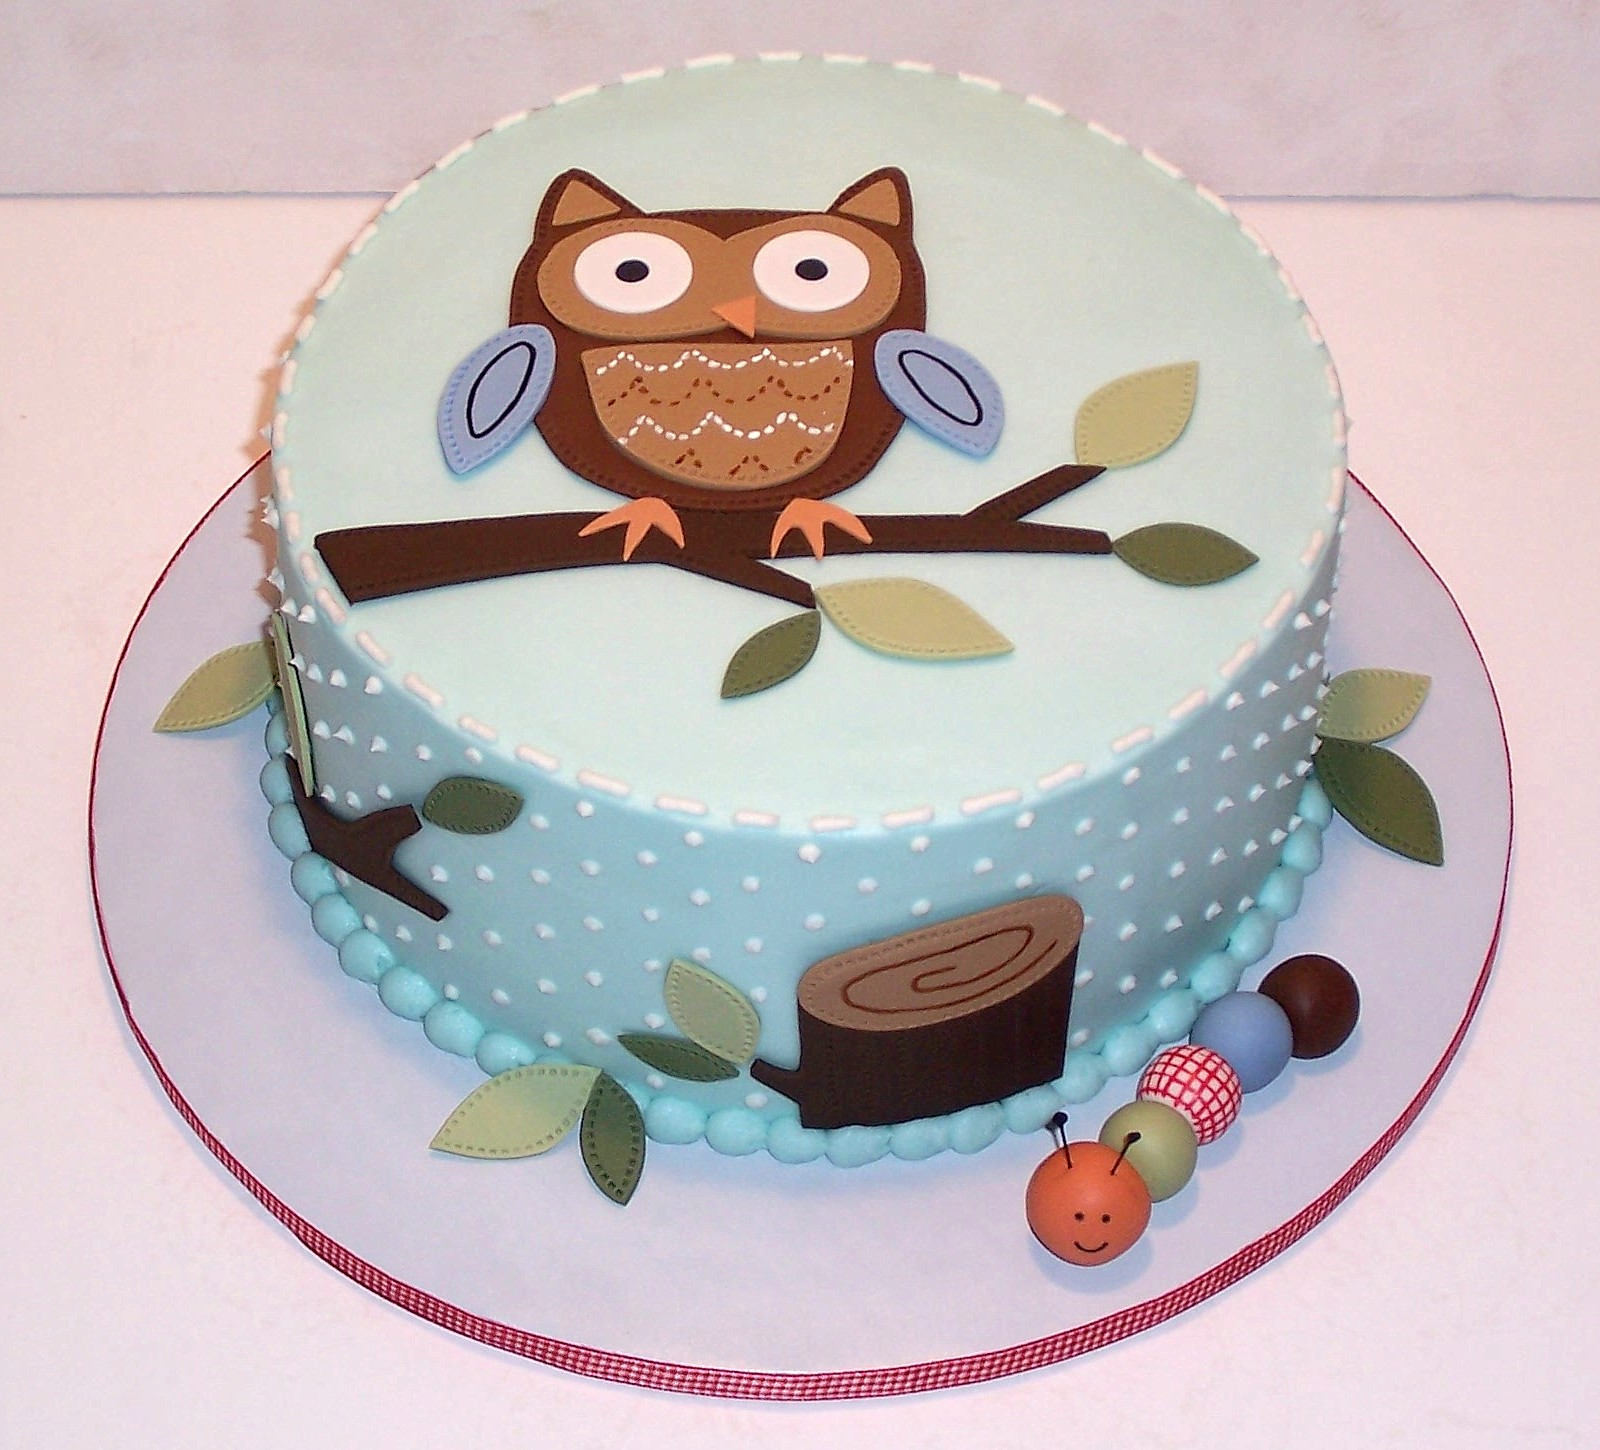 Baby Shower Cakes: Baby Shower Cake Ideas Owls